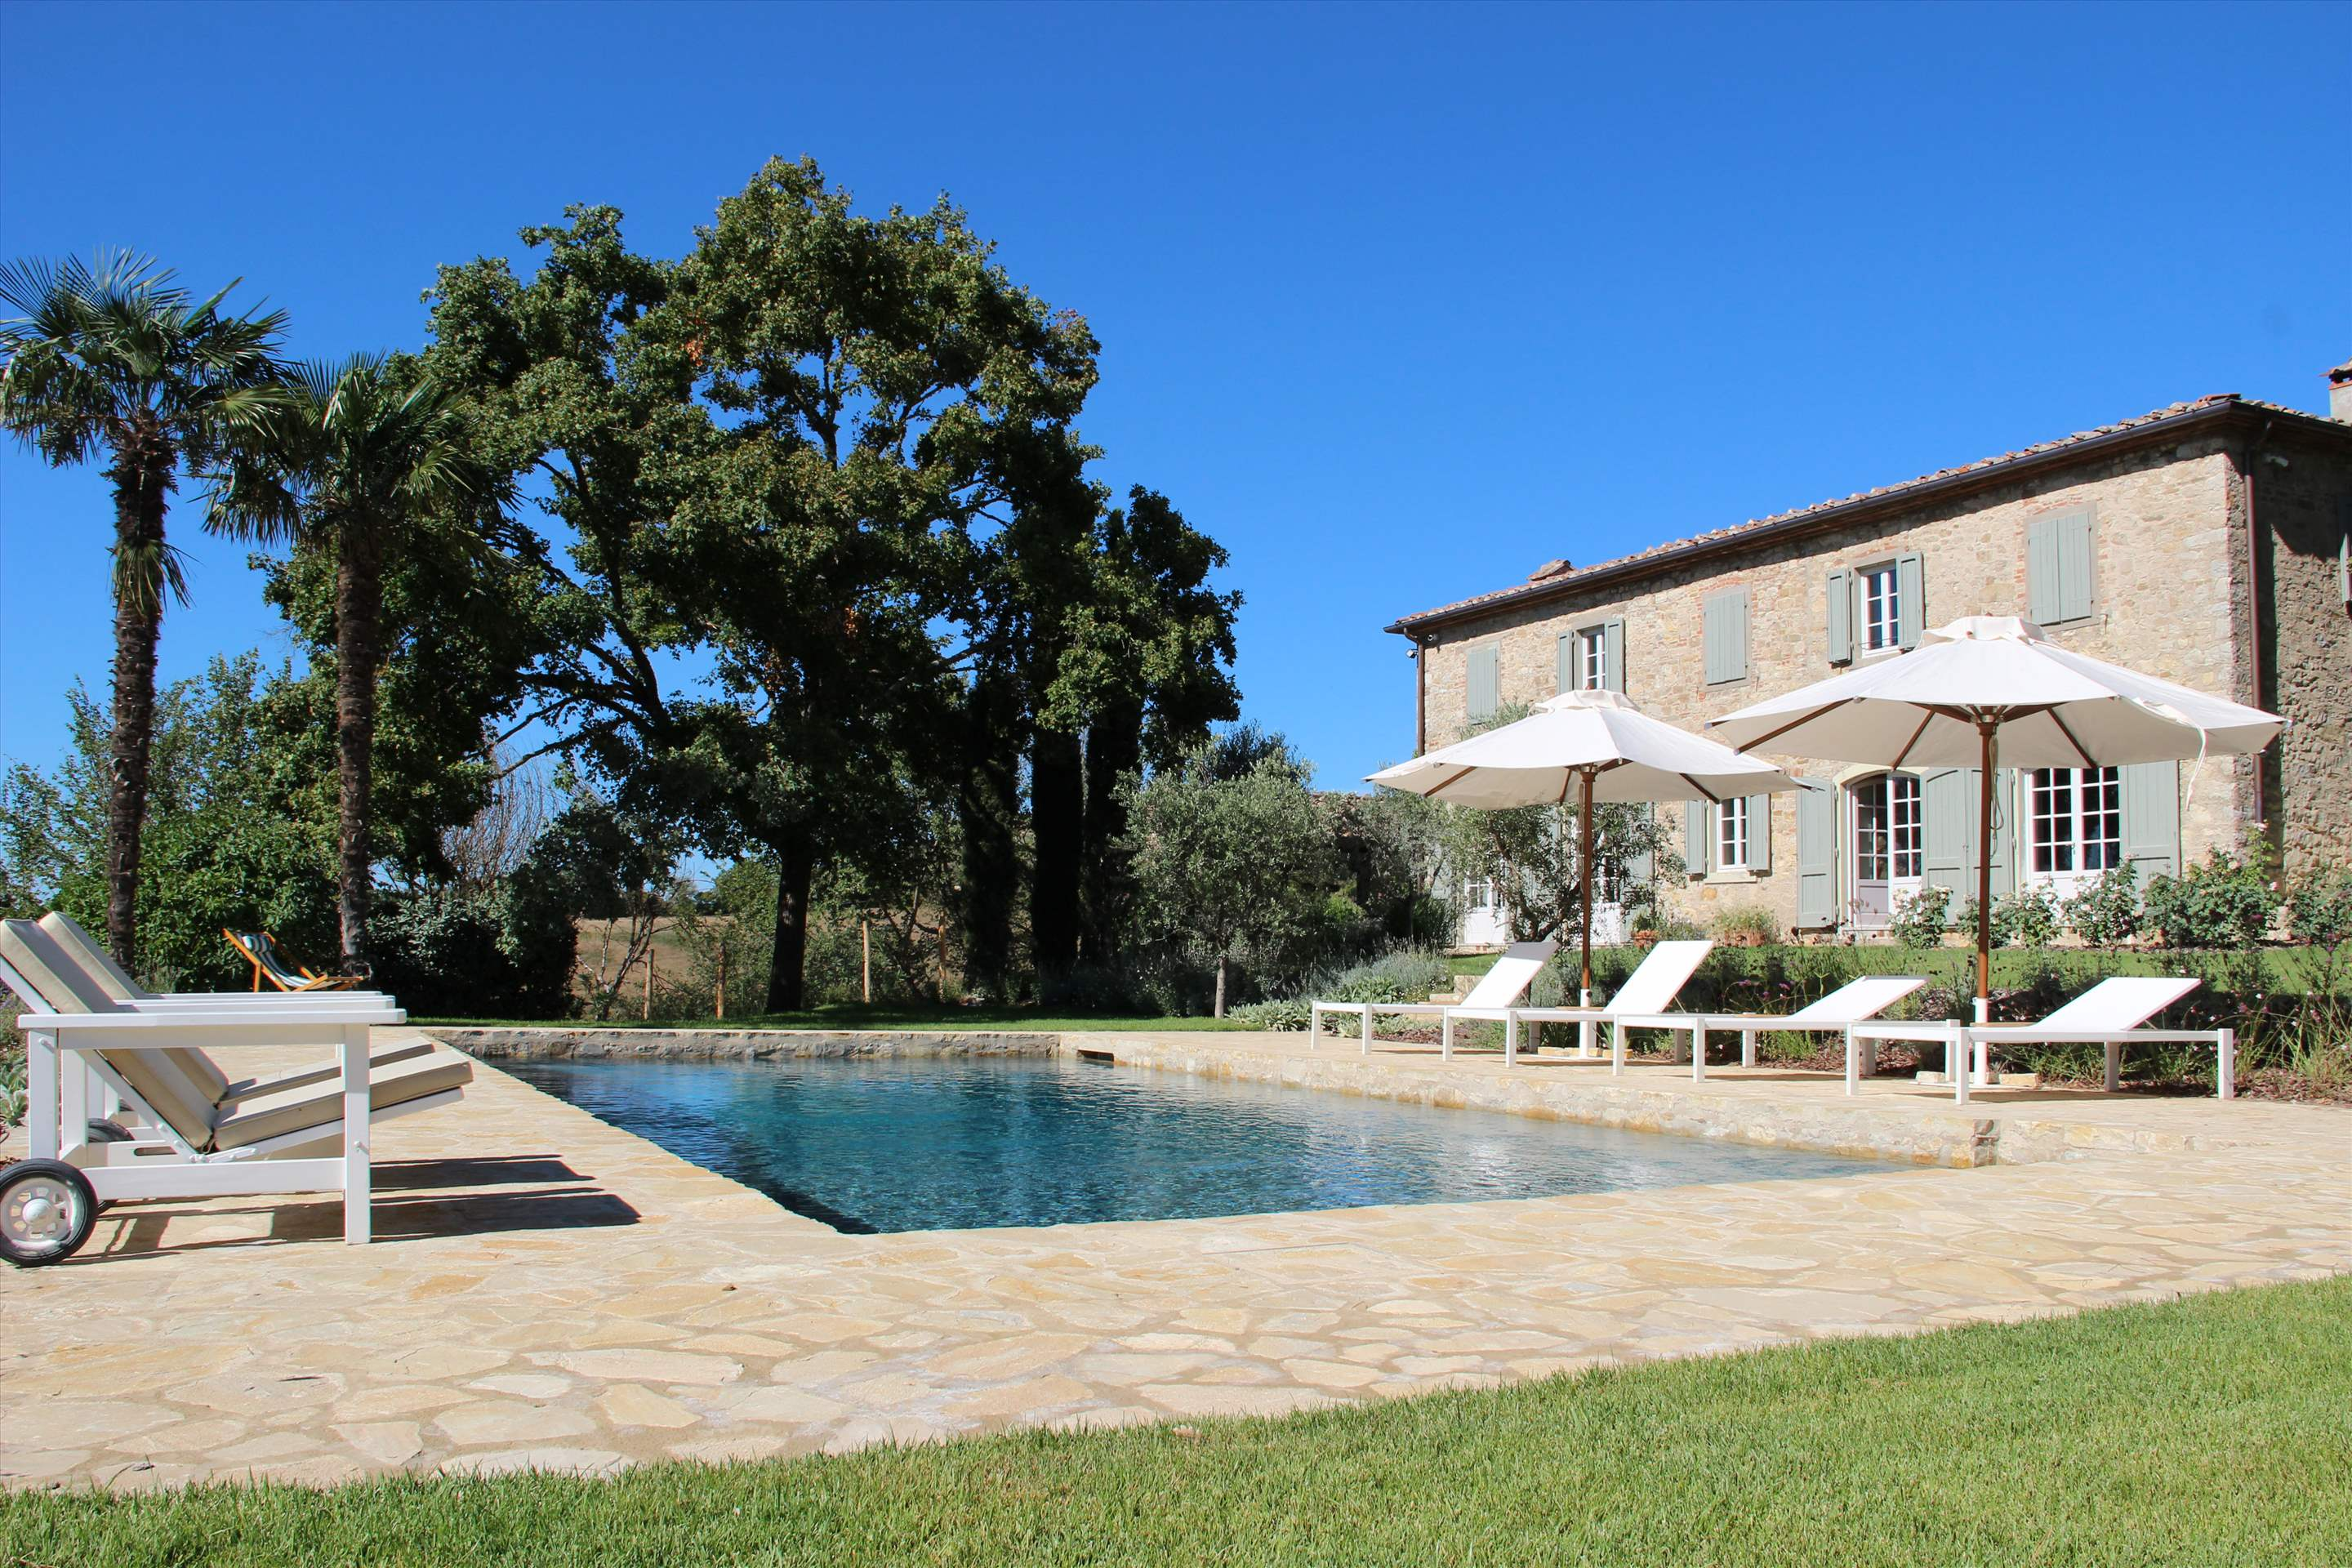 Villa Lecchi, 5 bedroom villa in Chianti & Countryside, Tuscany